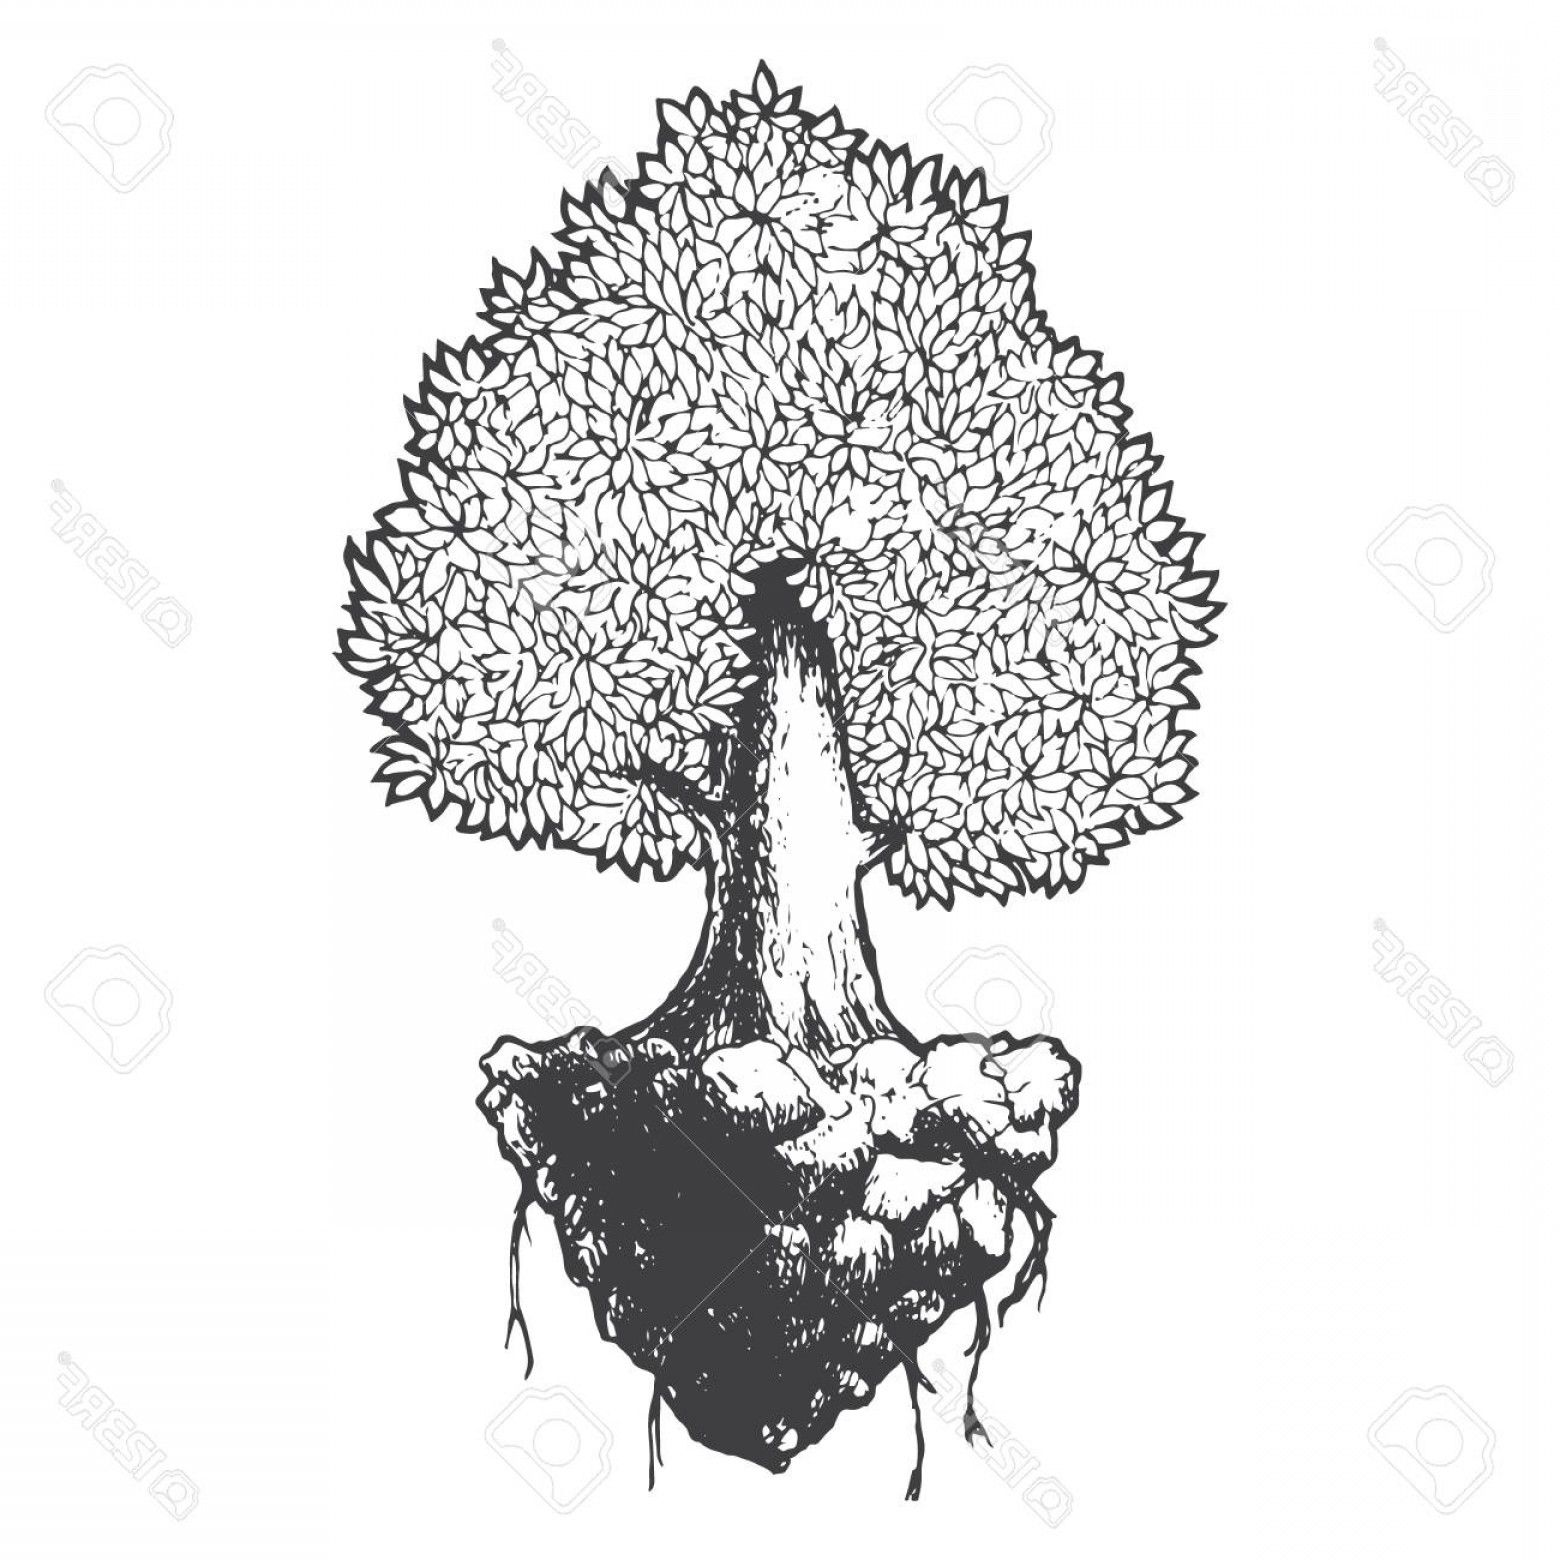 Contoon Free Black Vector Tree: Photostock Vector Tree Life Black And White Sketch Cartoon Doodle Vector Illustration